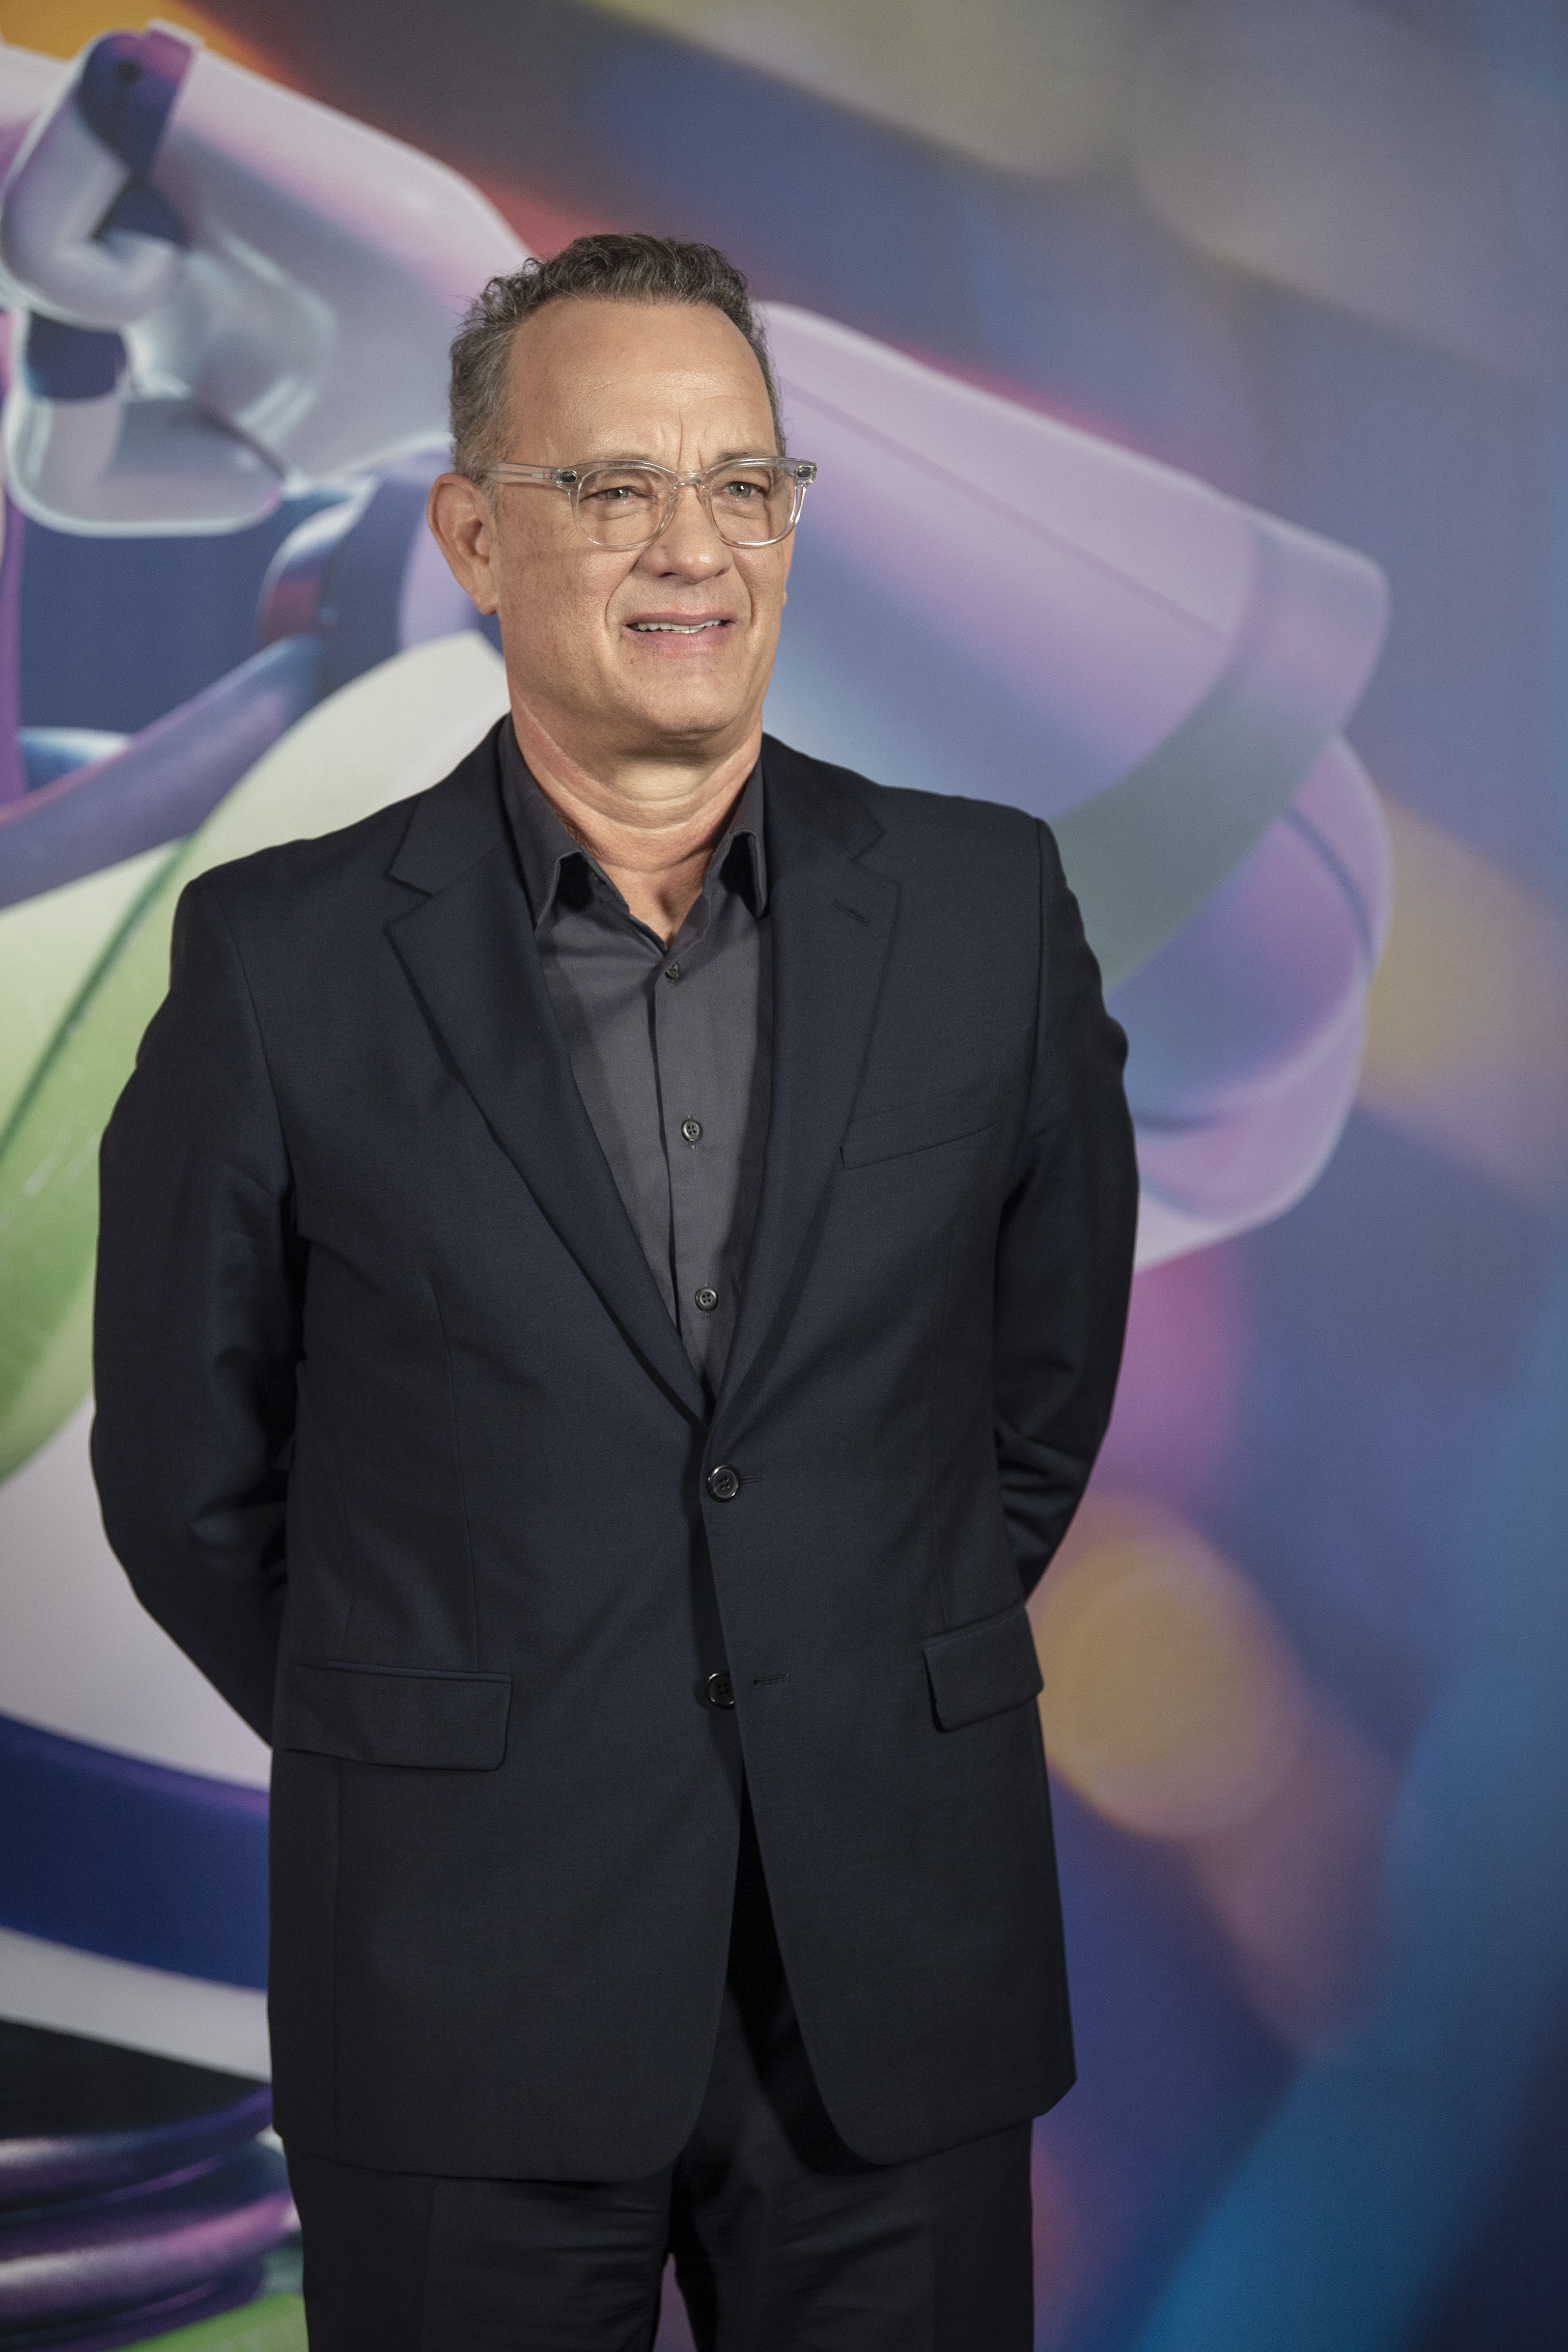 Tom Hanks attends the 'Toy Story 4' photocall on June 19, 2019, in Barcelona, Spain. | Source: Getty Images.